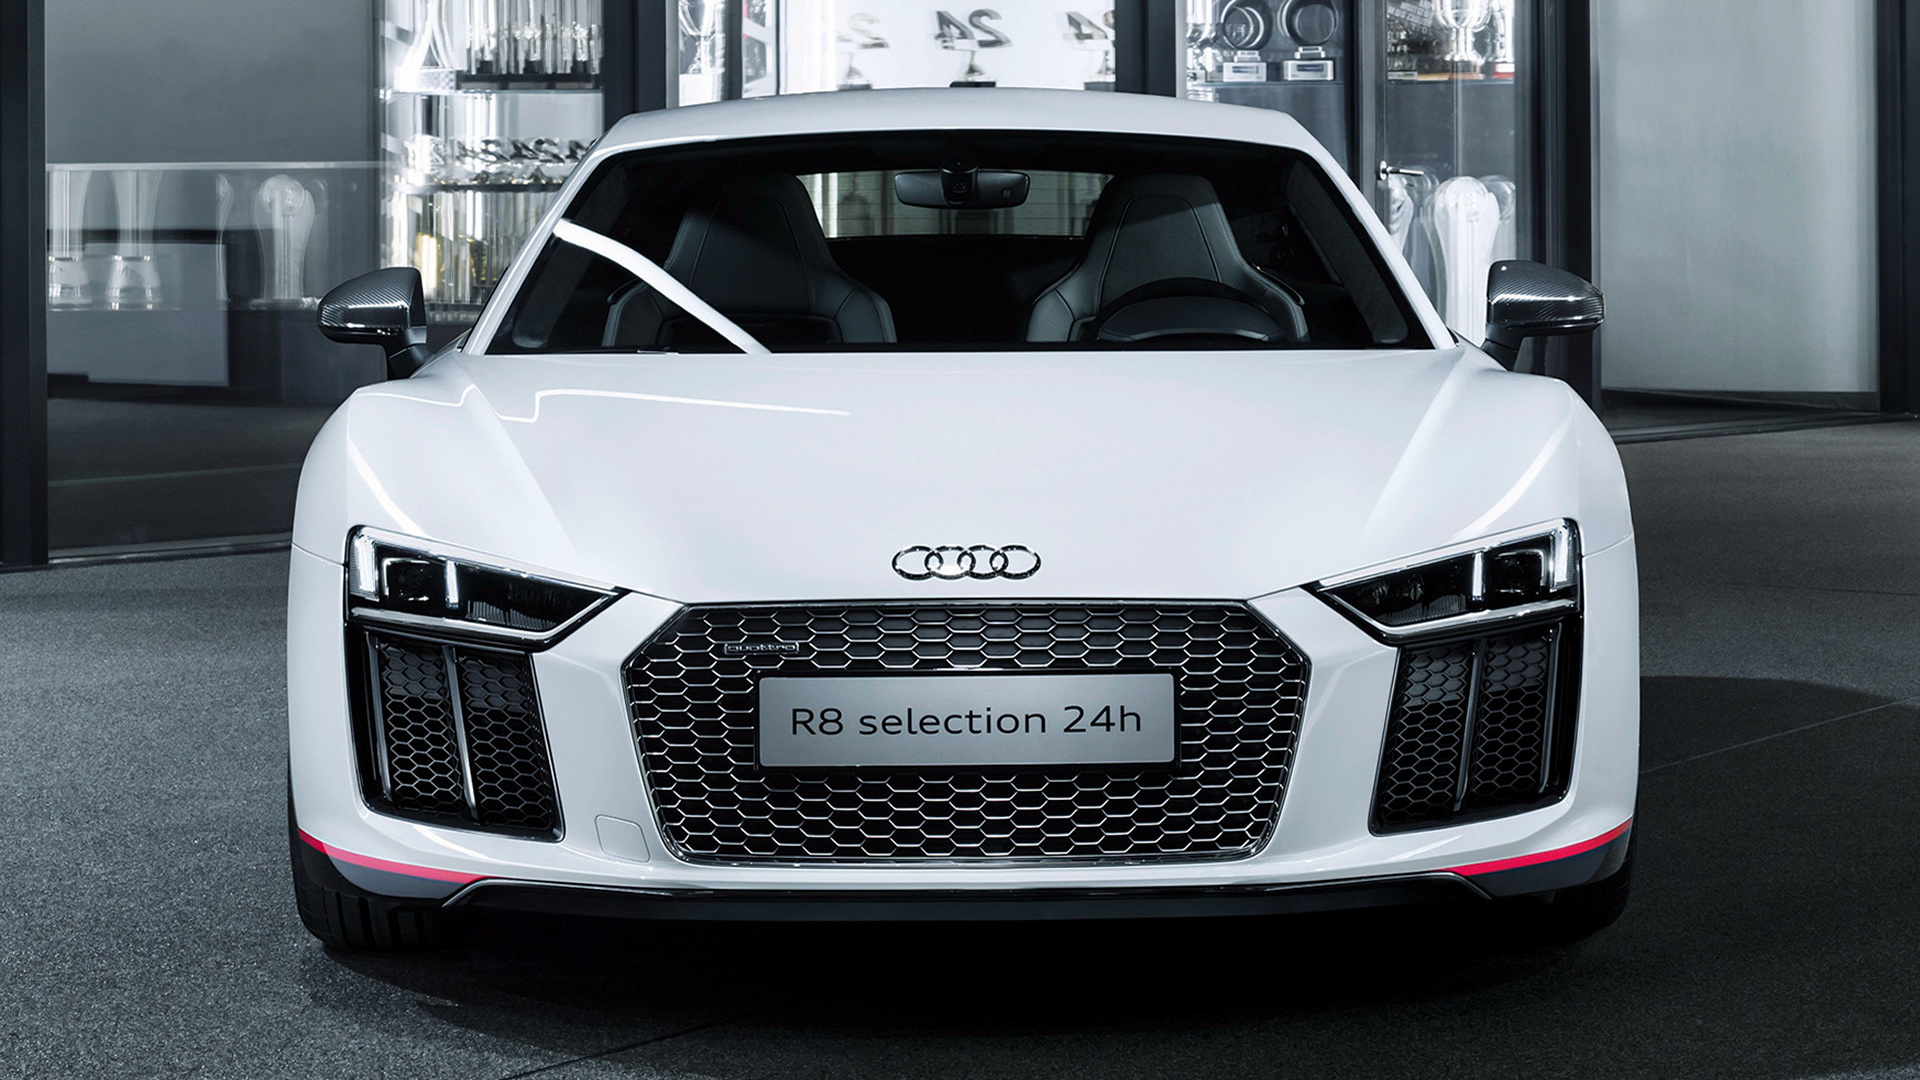 Cool Hd Audi Wallpapers Free Download Audi Wallpapers For